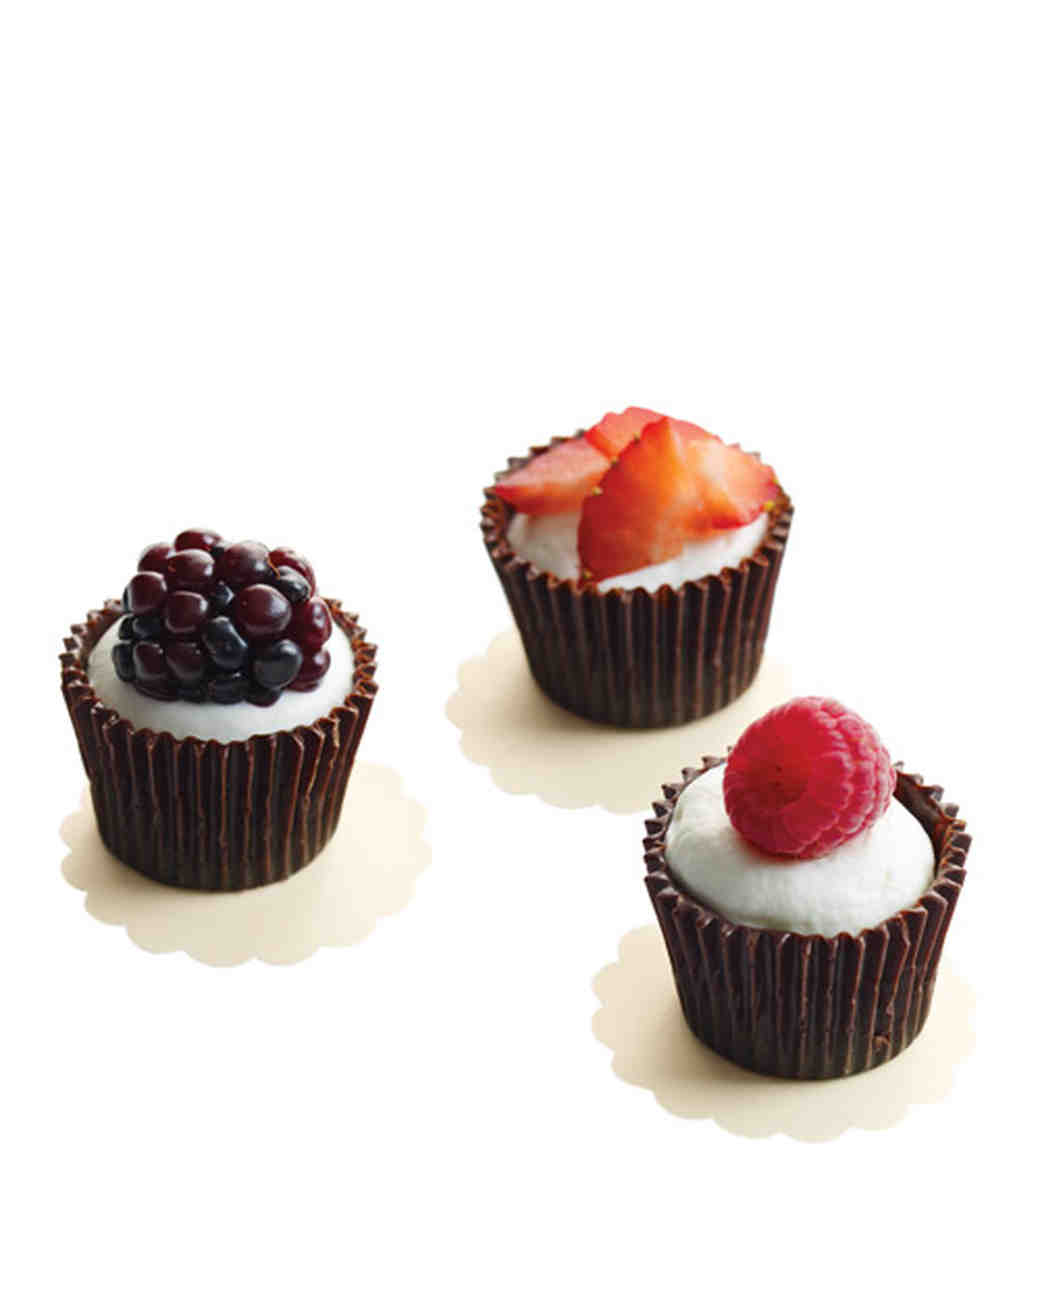 Chocolate Cups with Cream and Berries